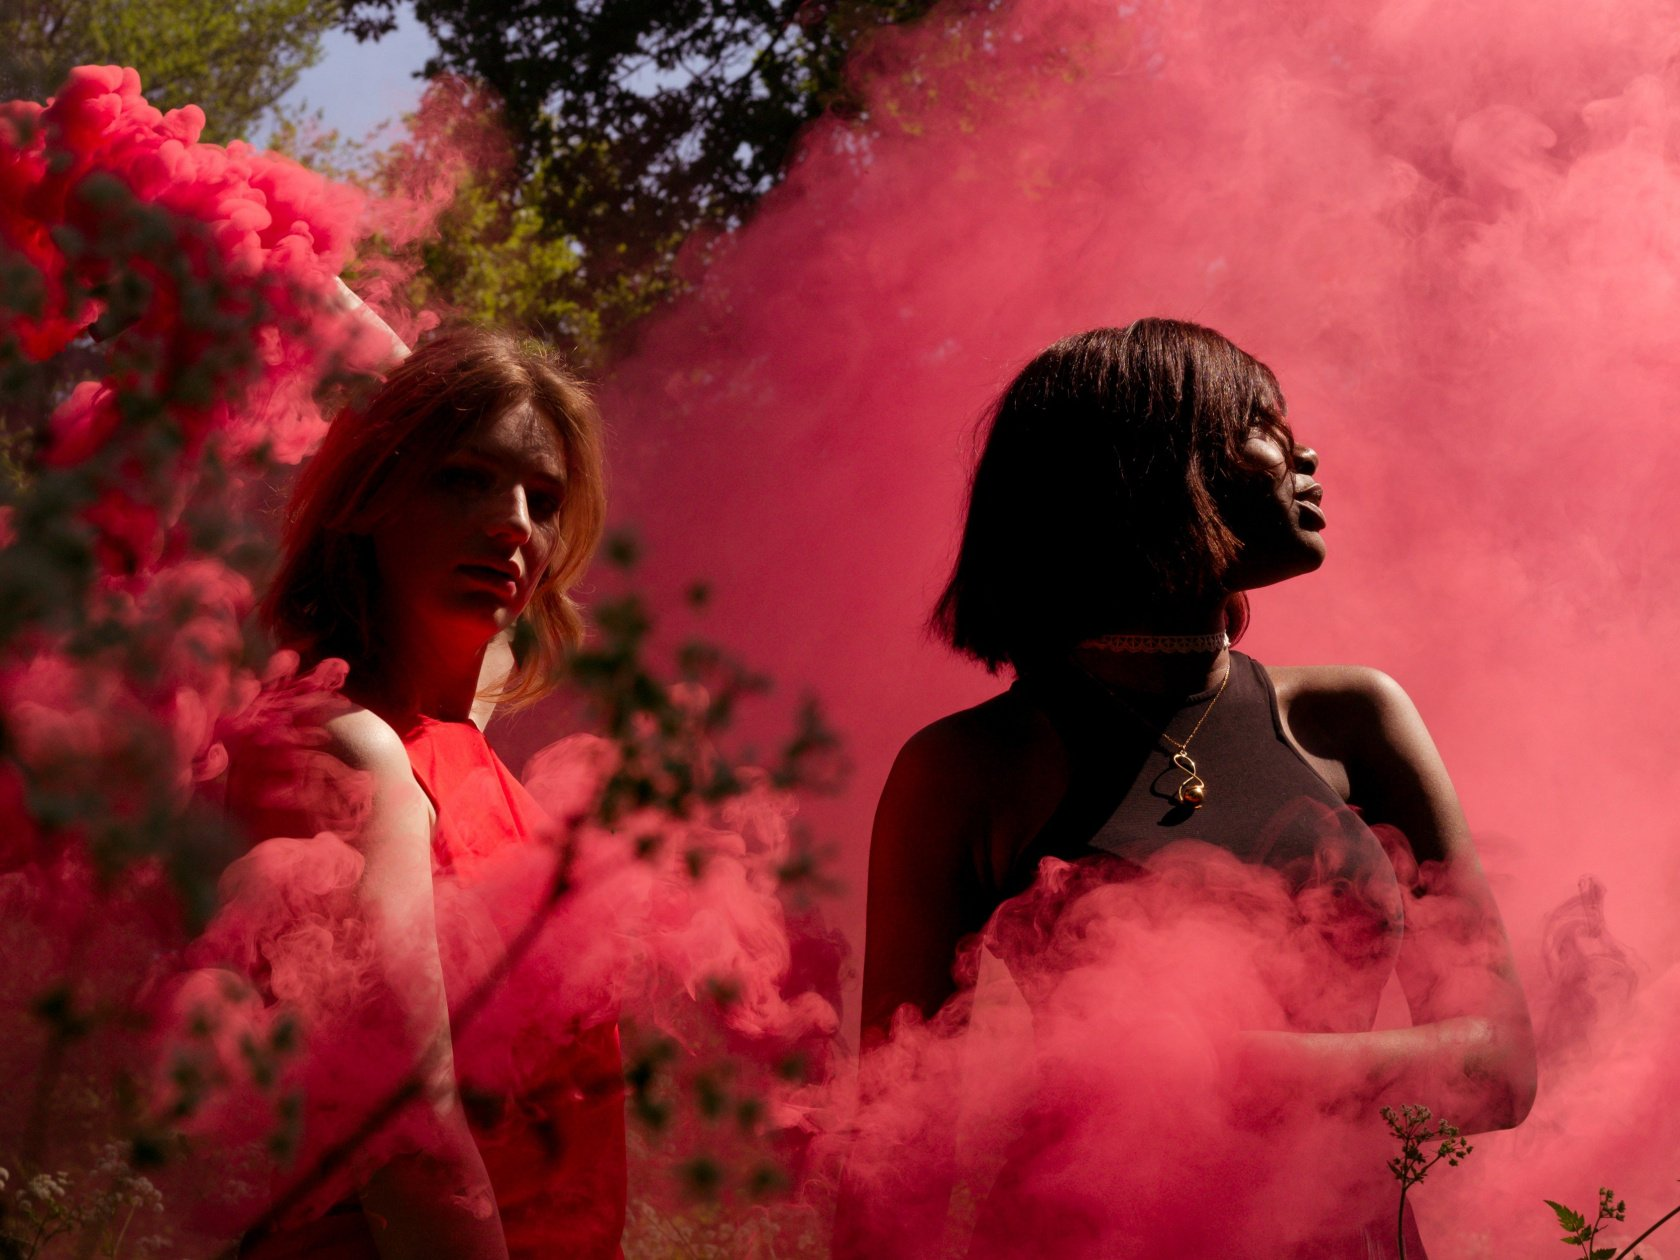 Smoke Bomb Photography You Can Master Quickly and Easily Image6